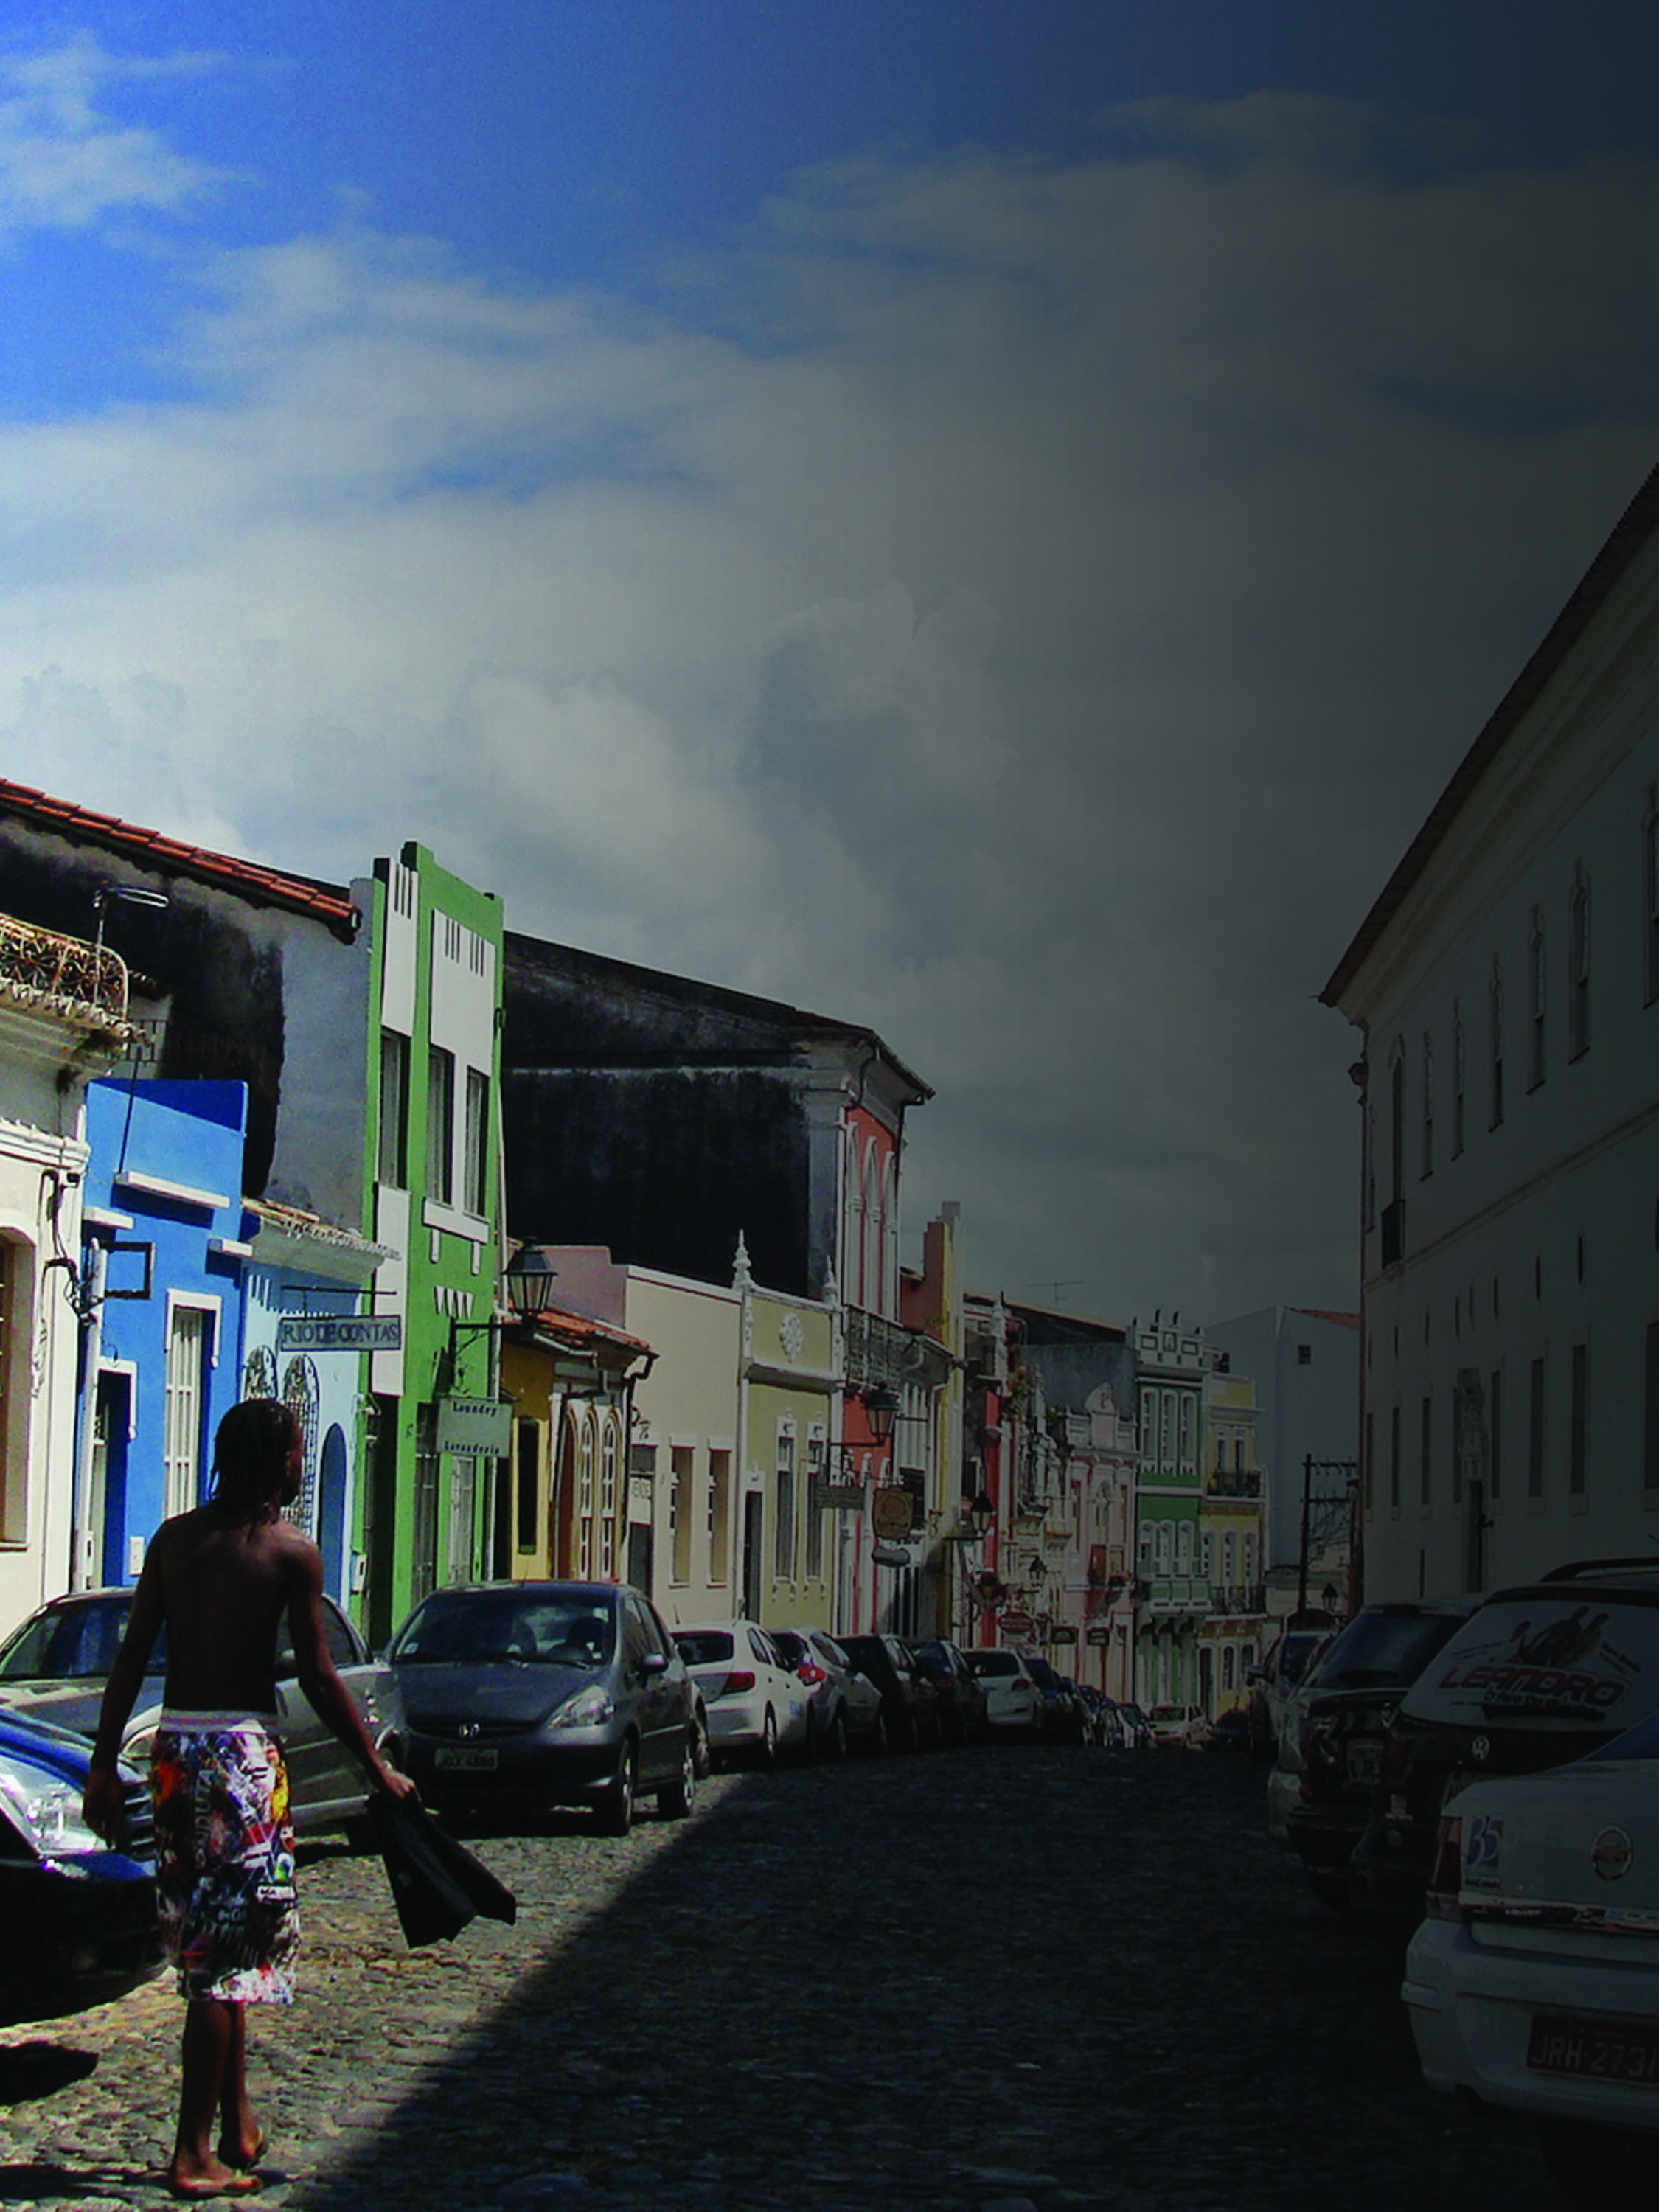 A view of Old Town Salvador, Bahia.    Source   : Mariana Ceratti / World Bank via Flickr